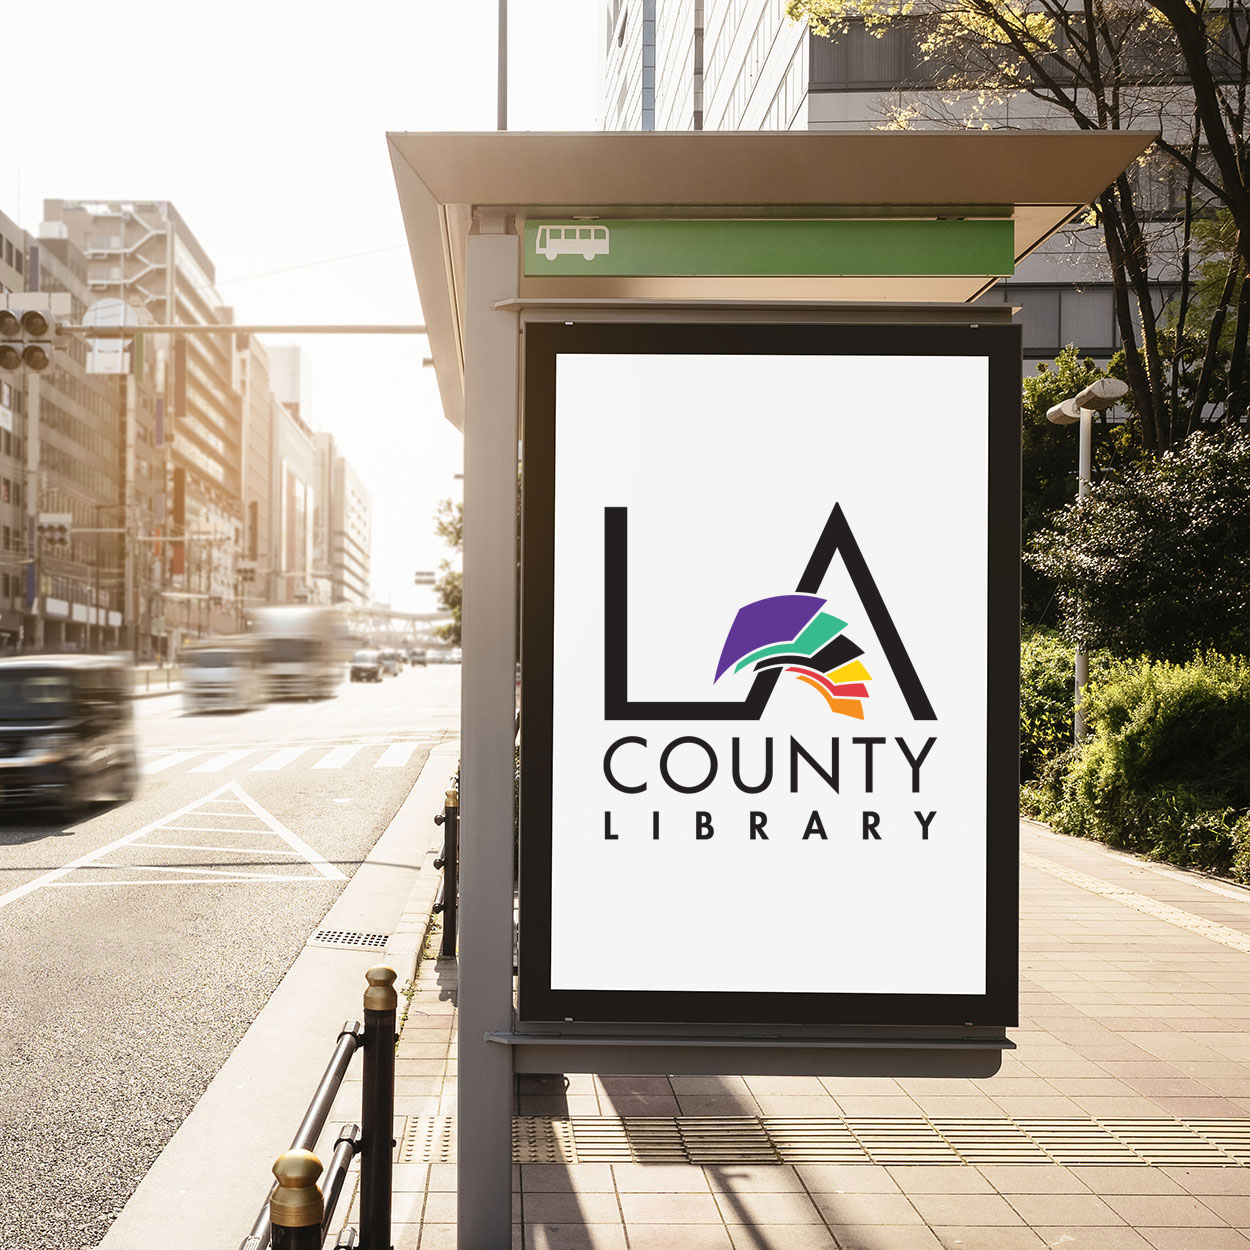 LA County Library media board